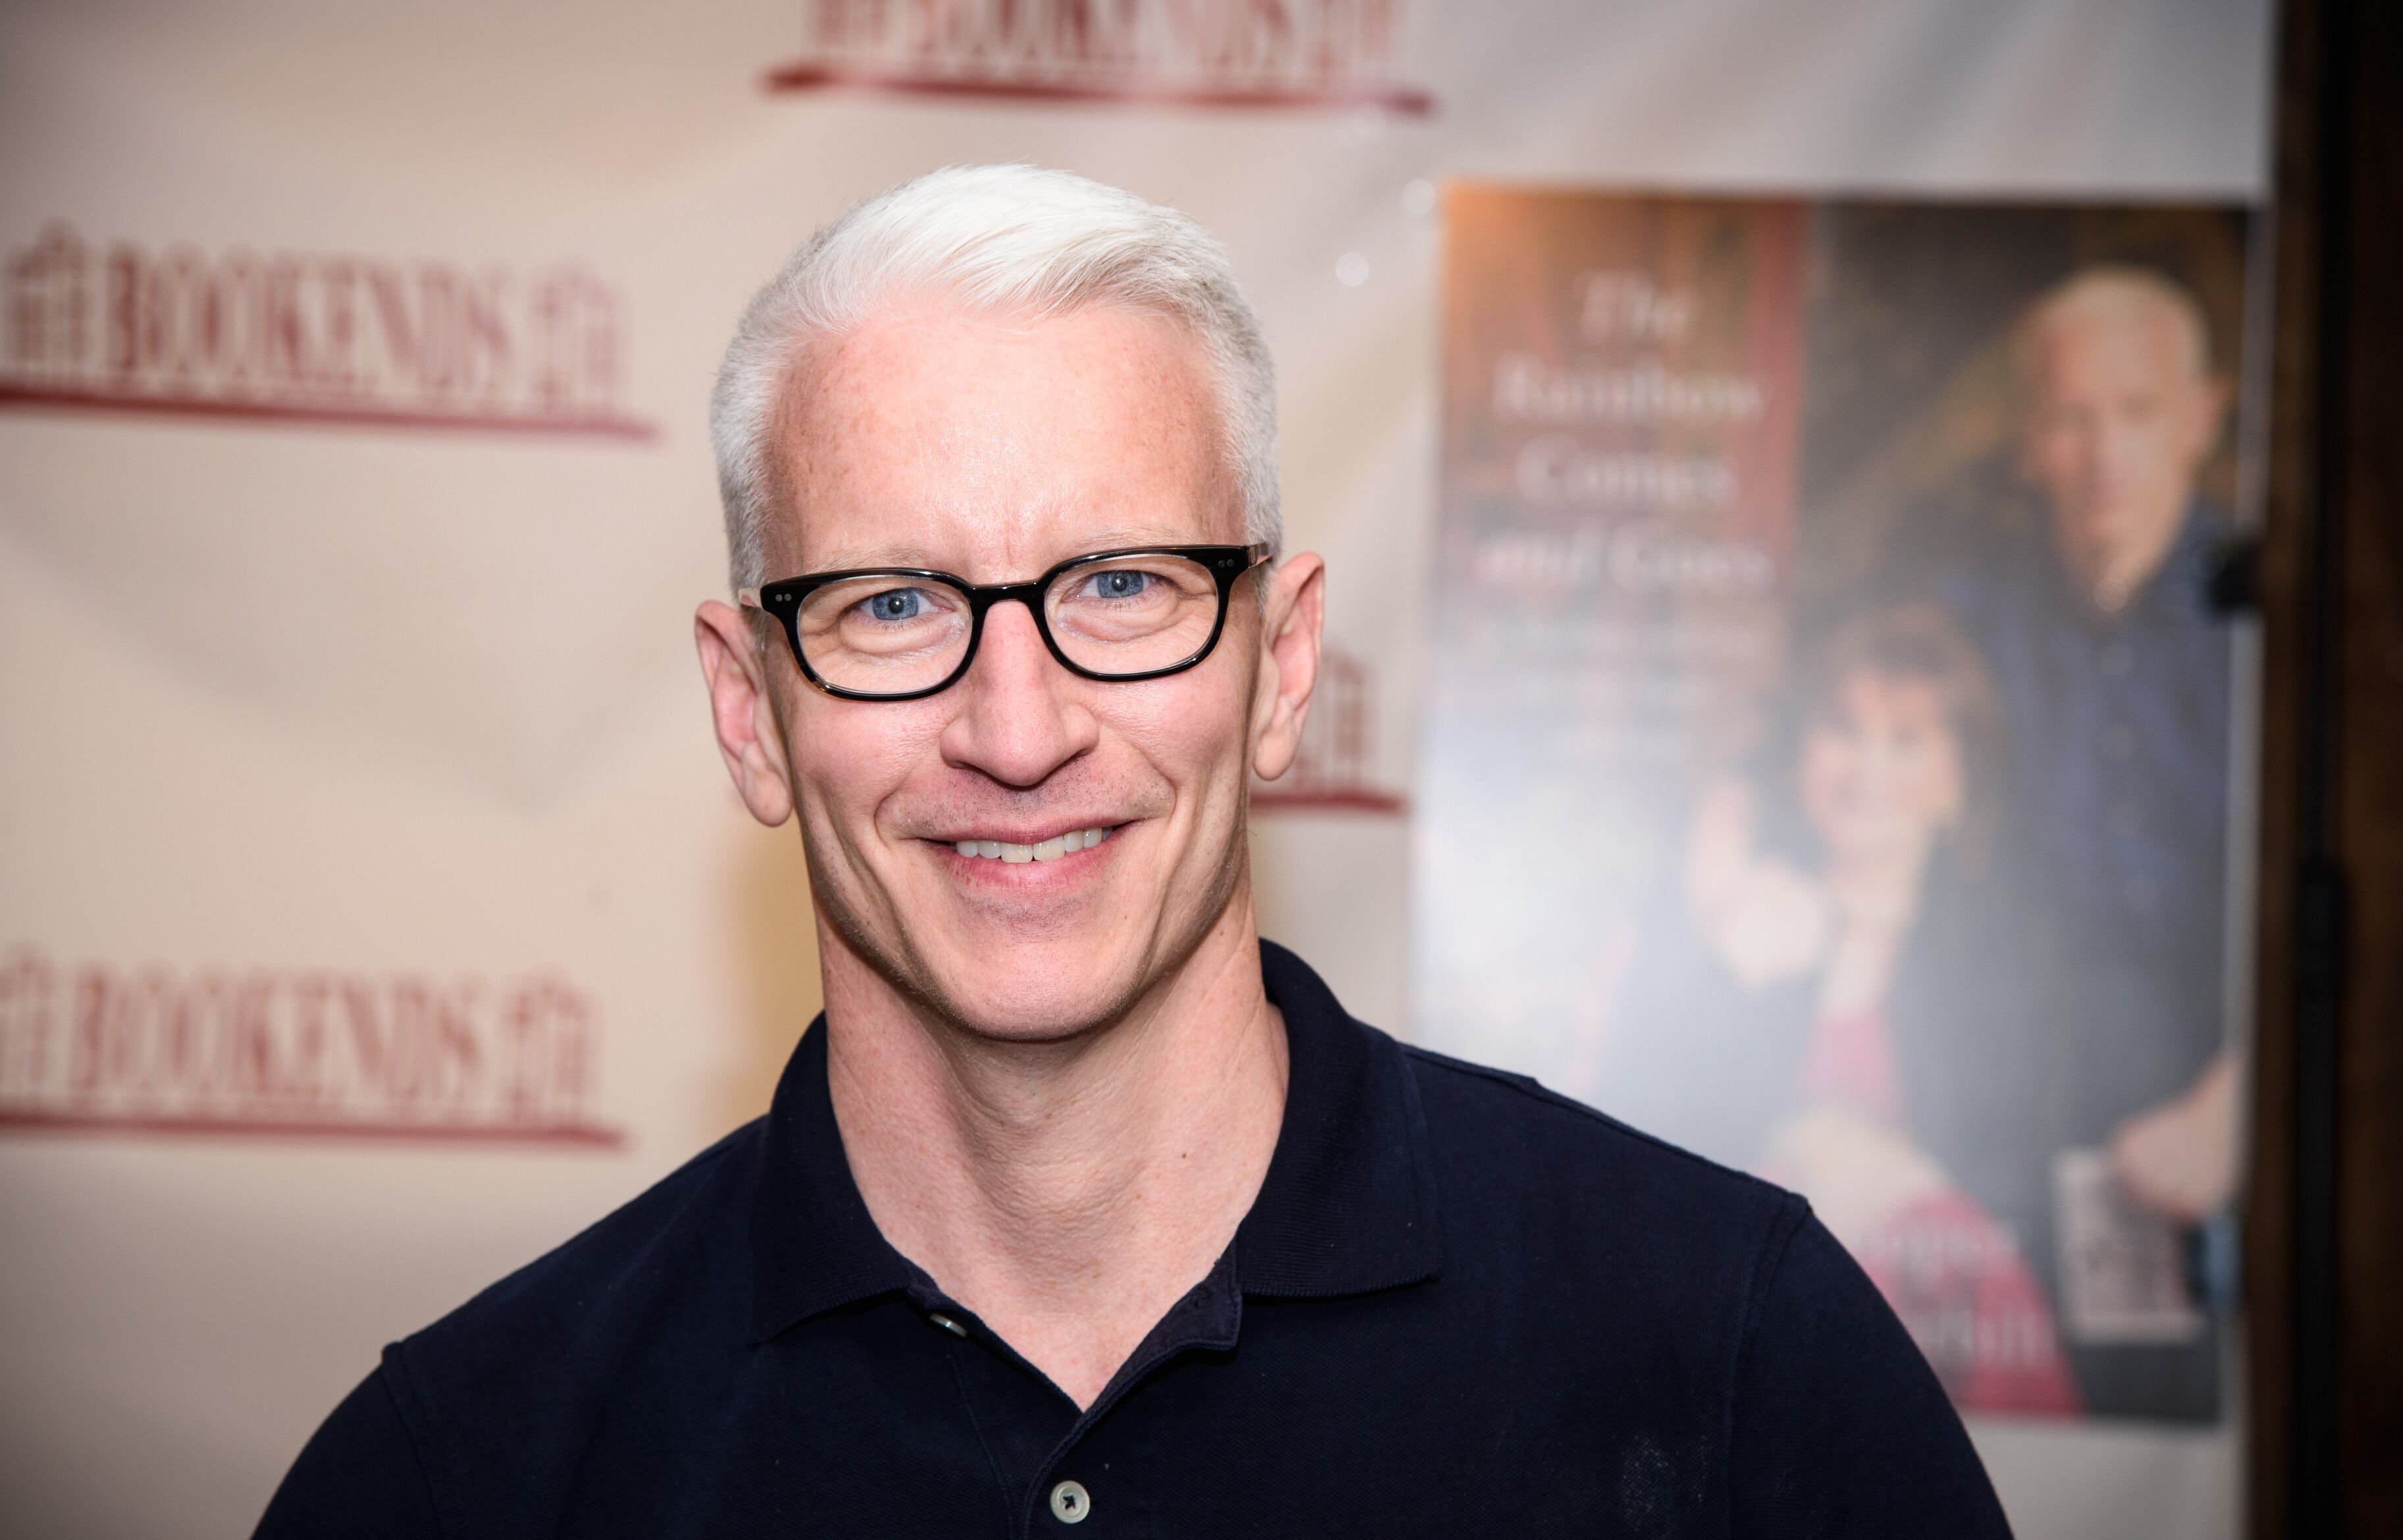 Anderson Cooper at the signing of his book at Bookends Bookstore on April 24, 2016 in Ridgewood, New Jersey | Photo: Getty images